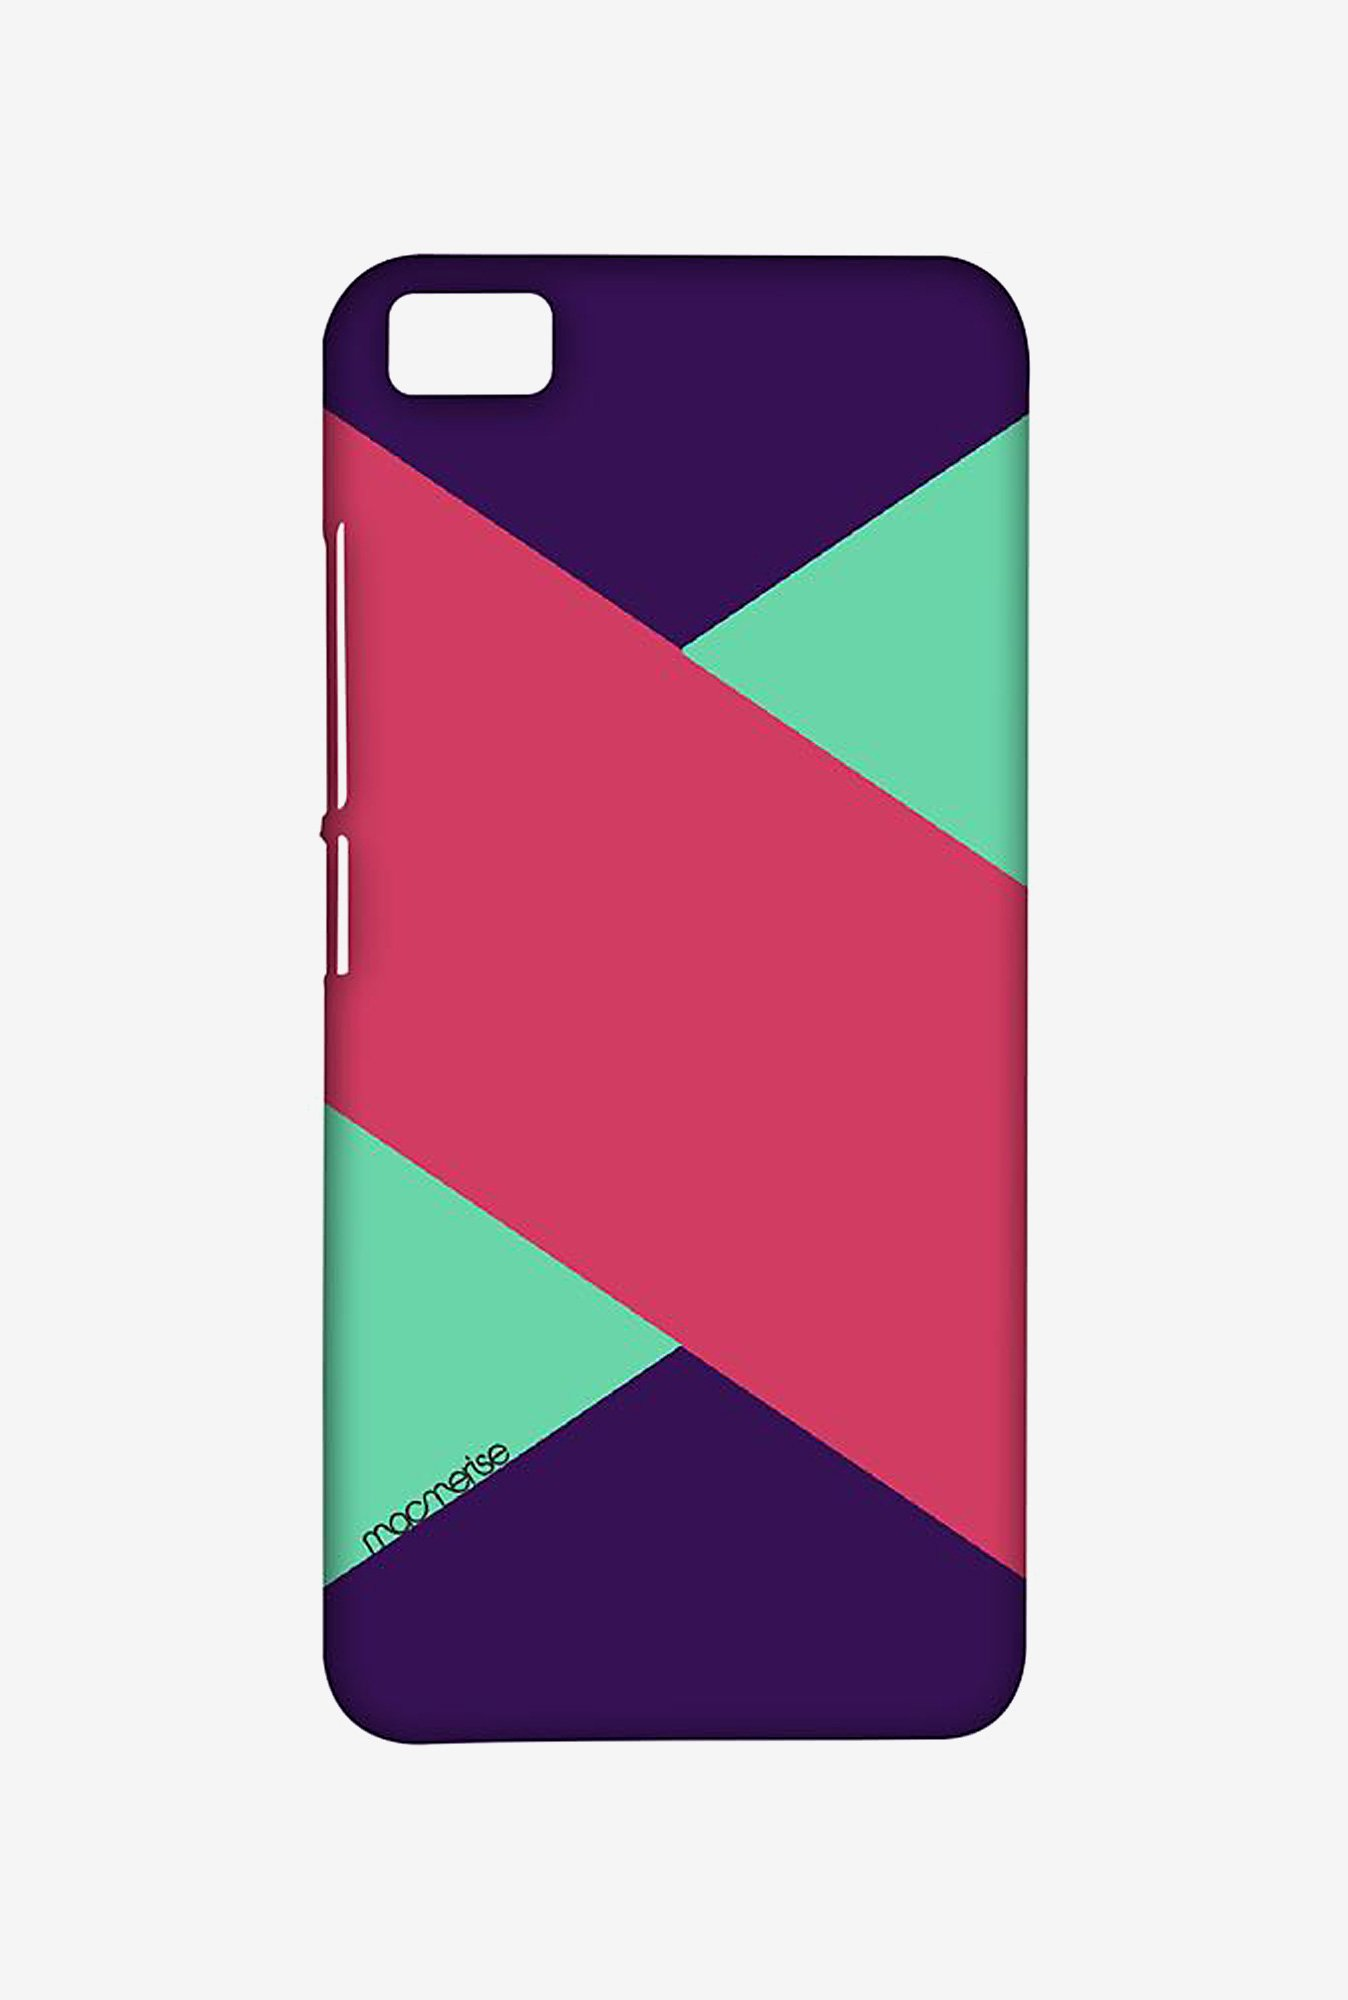 Macmerise XACM5SMI0914 Tealpink Stripes Sublime Case for Xiaomi Mi5